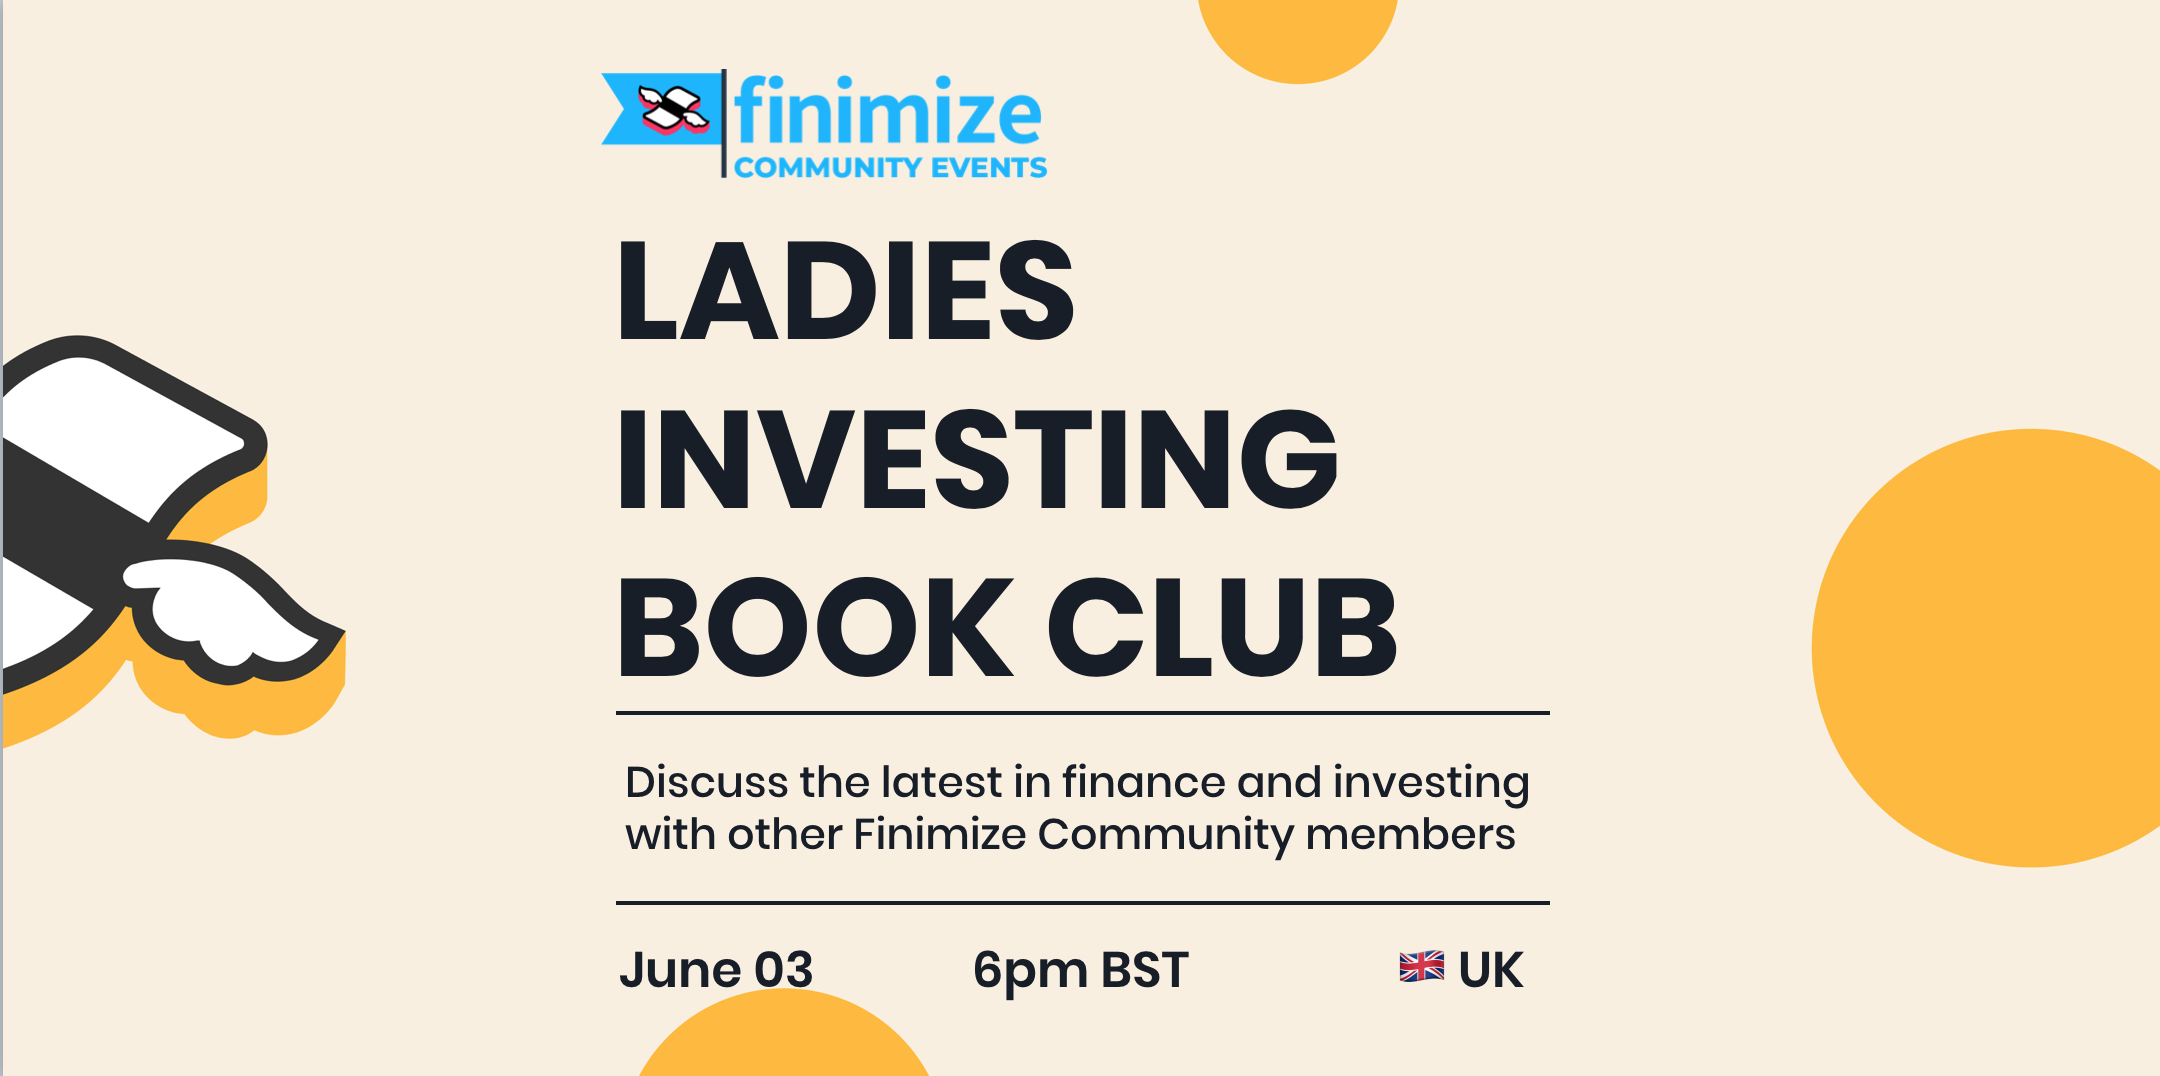 Ladies Investing Book Club, UK